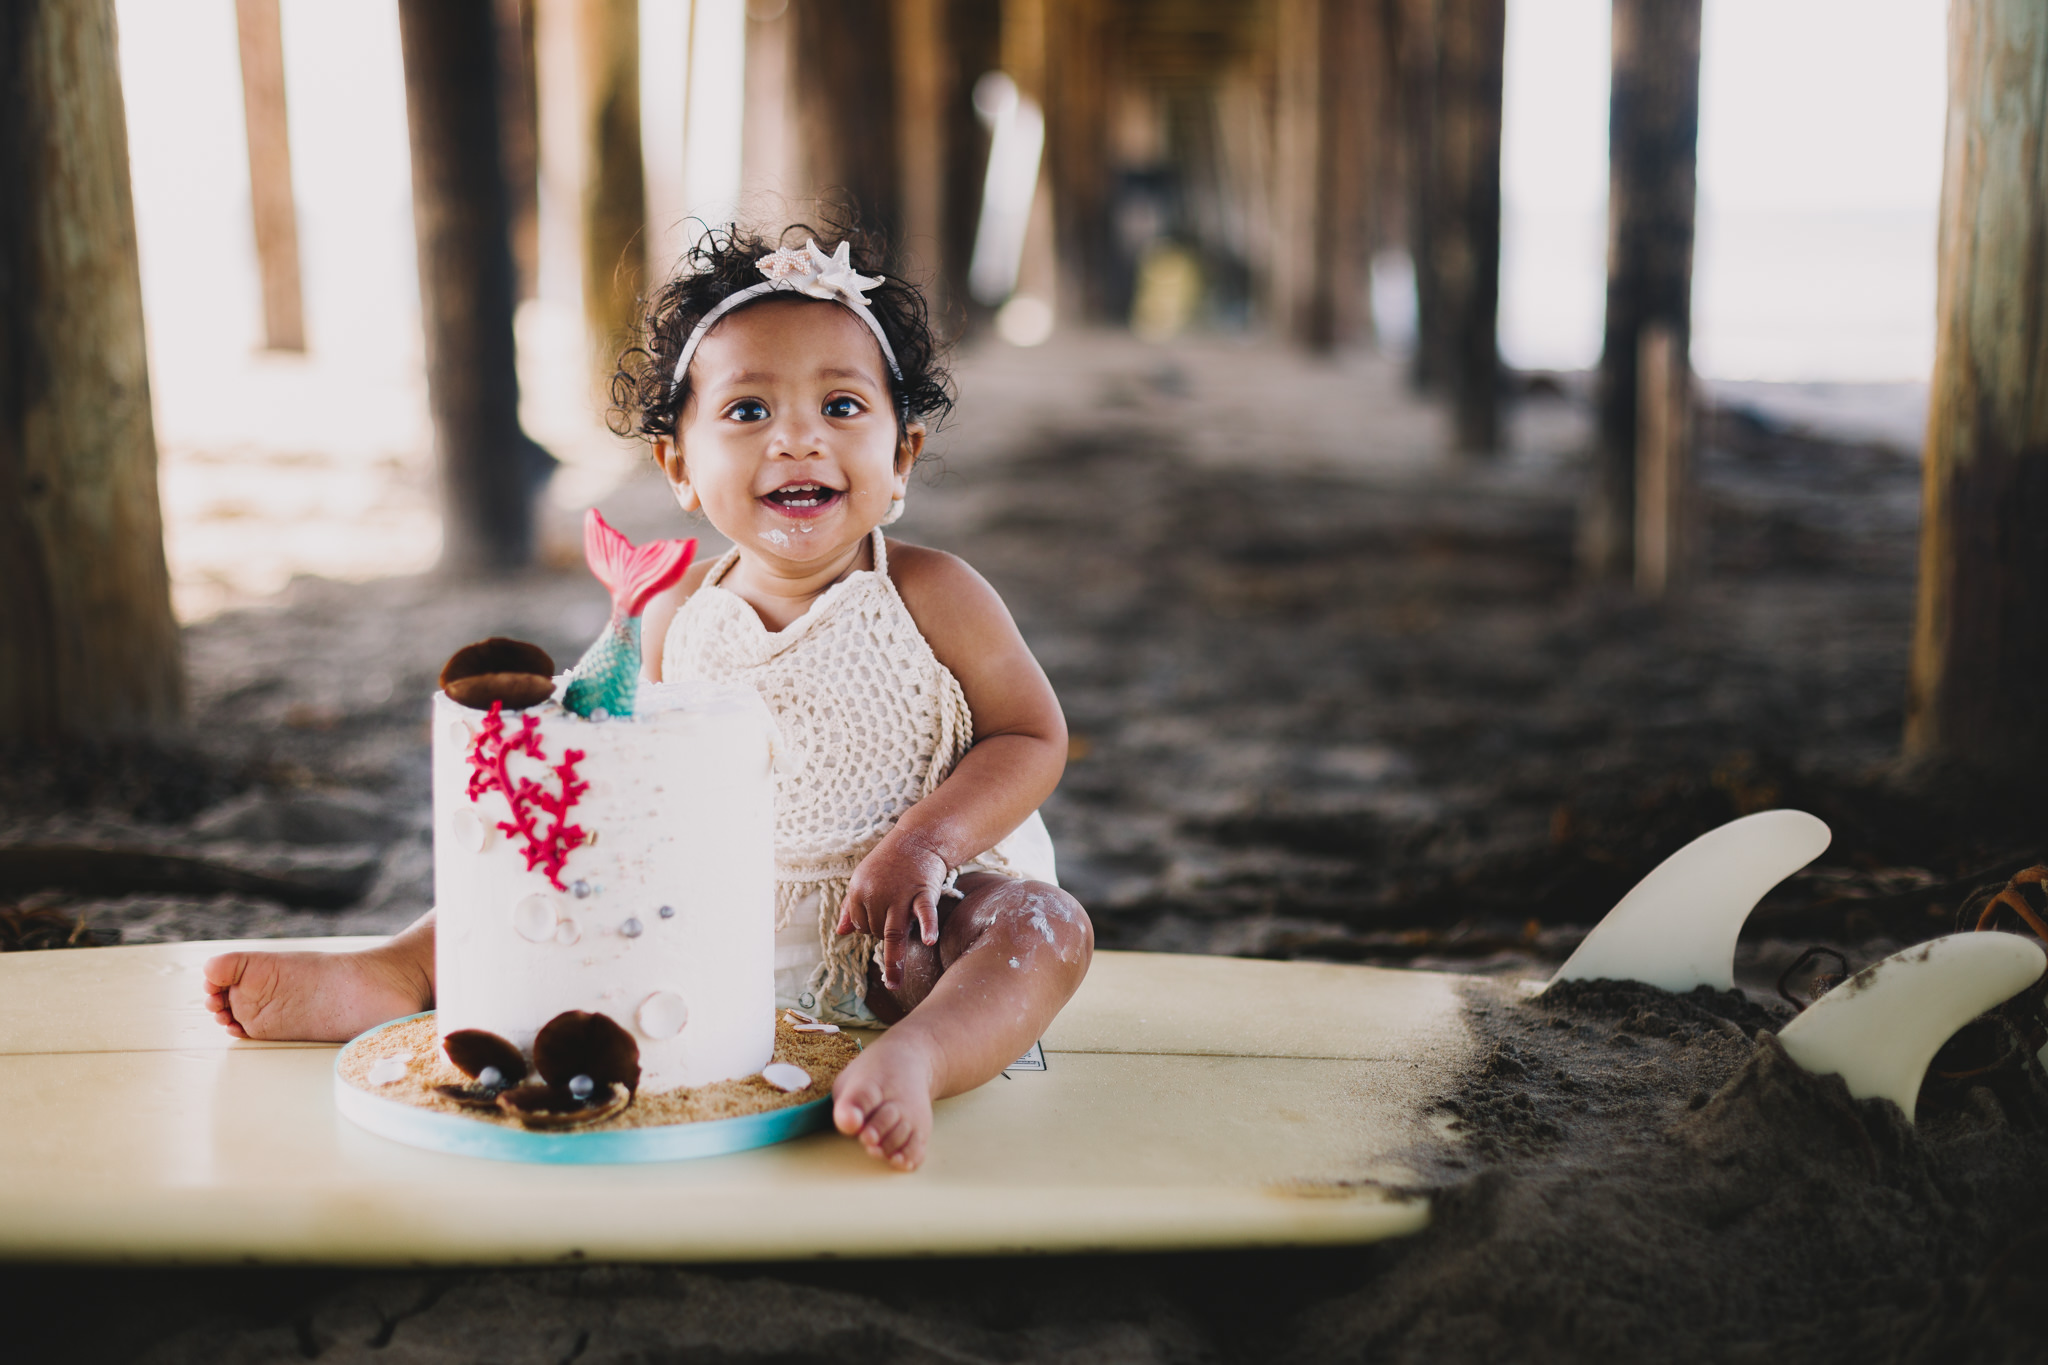 Archer Inspired Photography Cake Smash First Birthday Lifestyle Natural Light Documentary Family Photographer-26.jpg